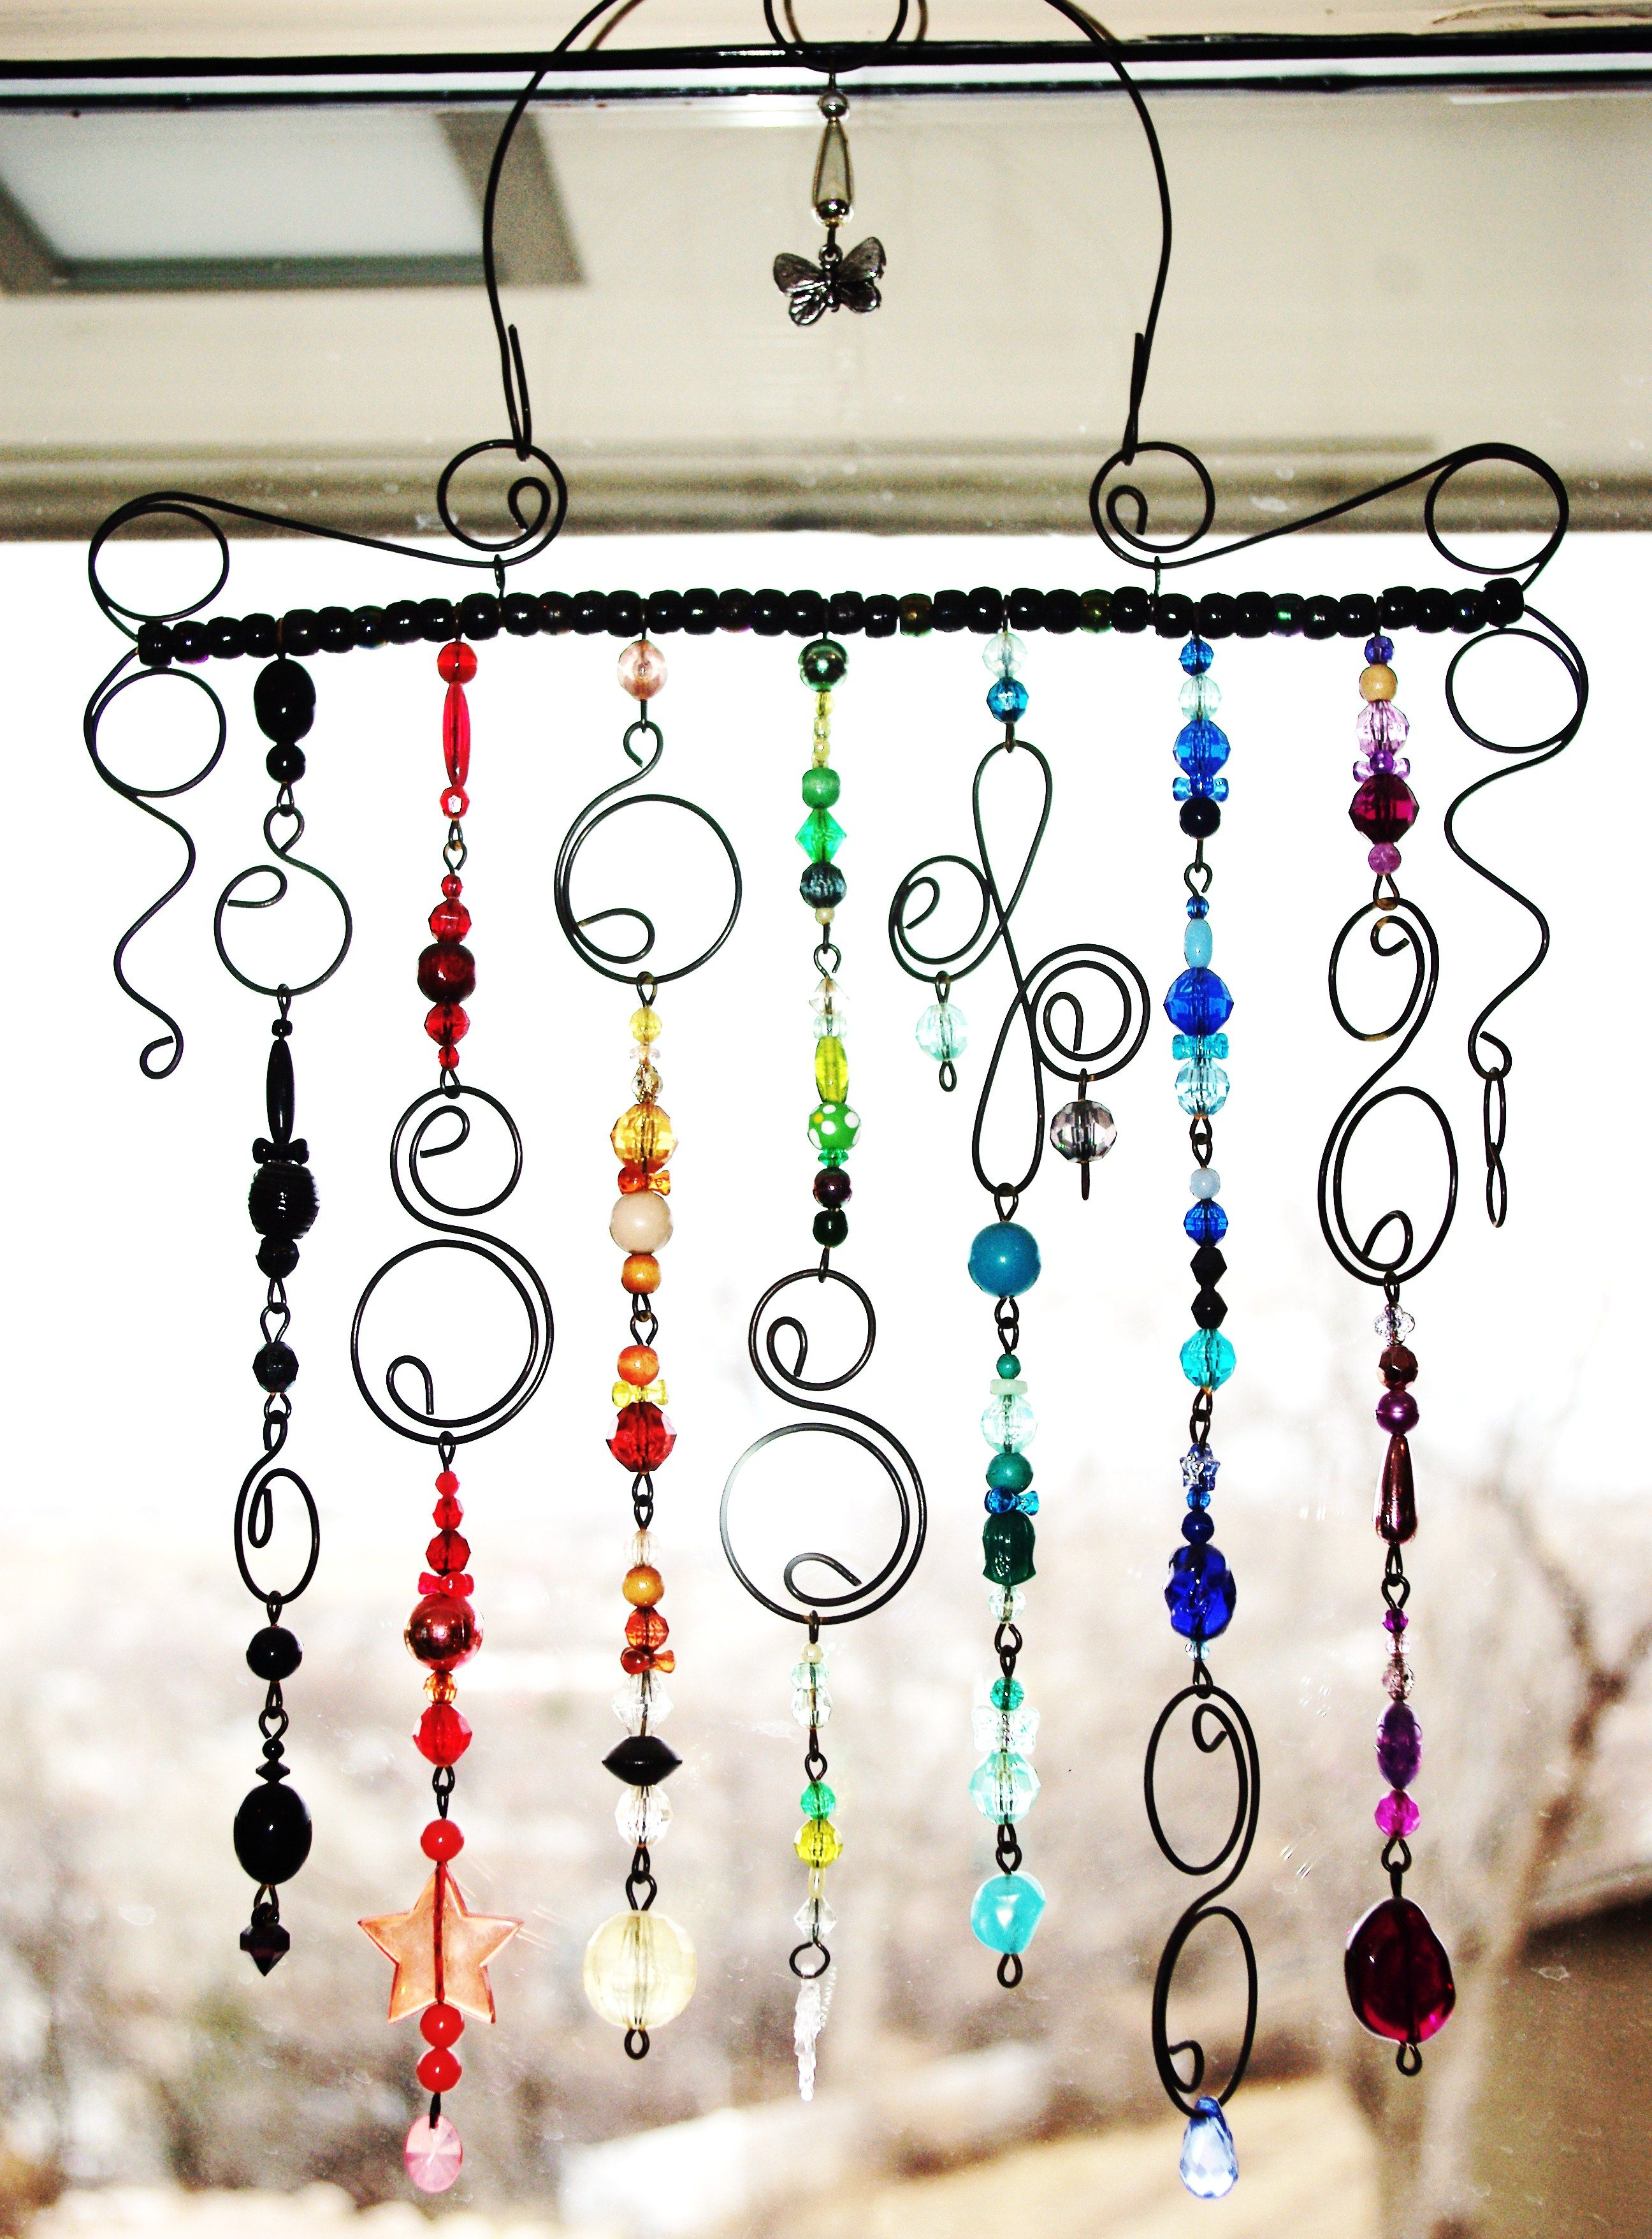 Beads & Wire - make individually as Christmas ornaments?